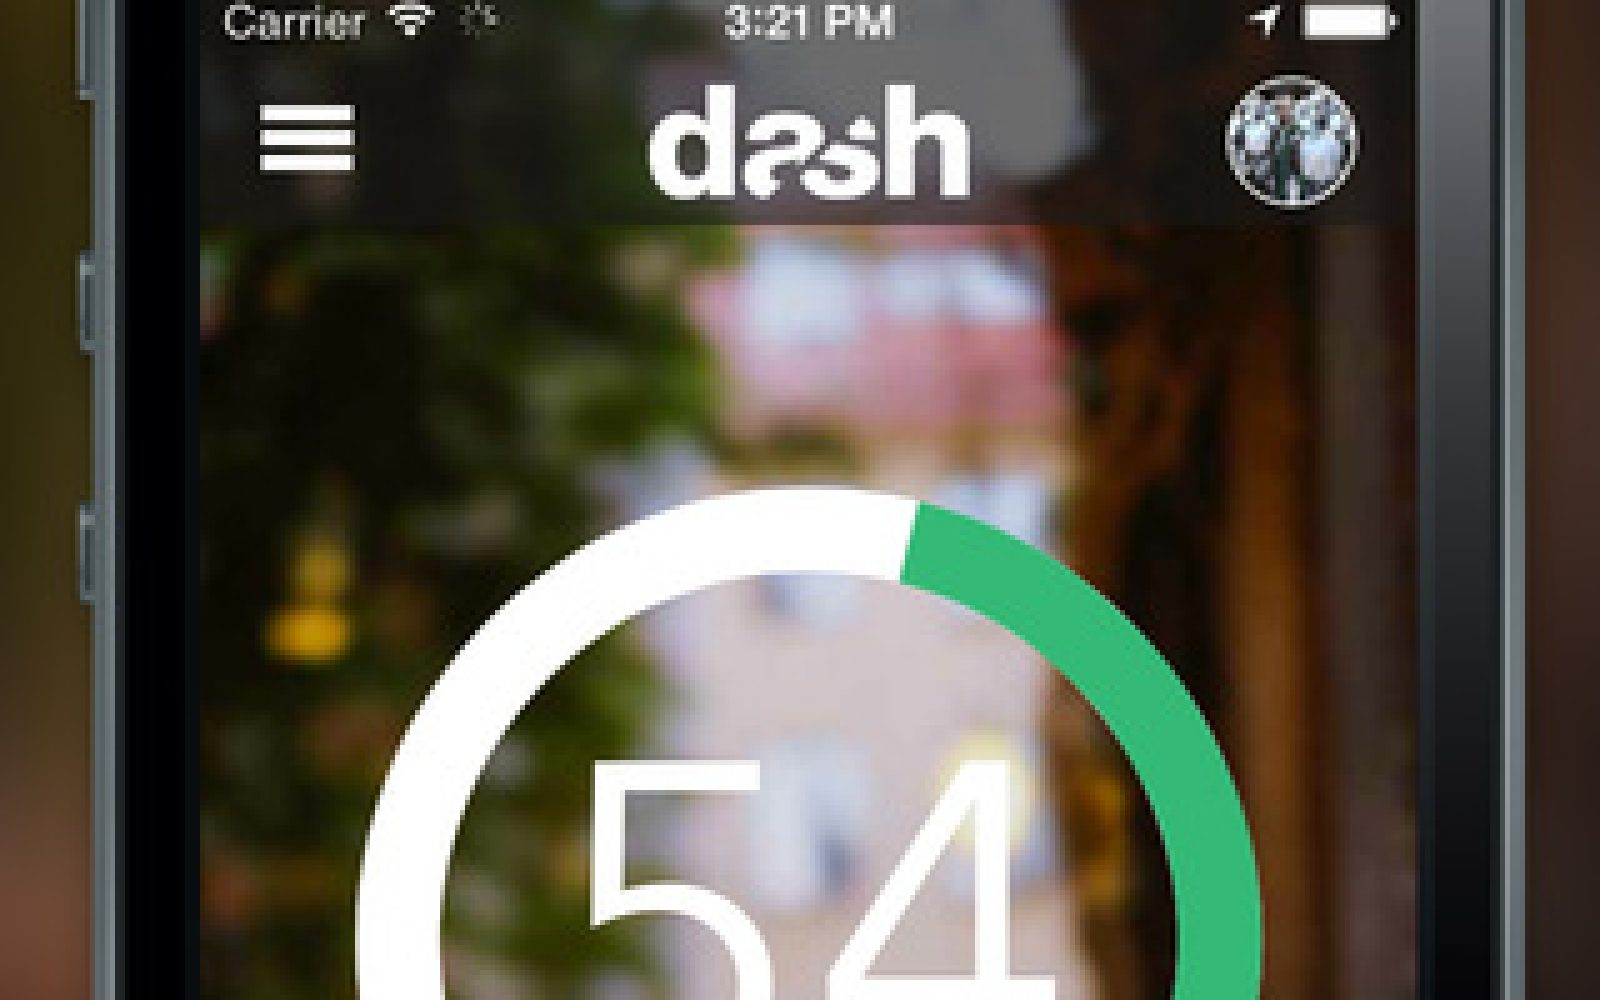 Dash releases its smart driving application for iPhone with support for third-party hardware